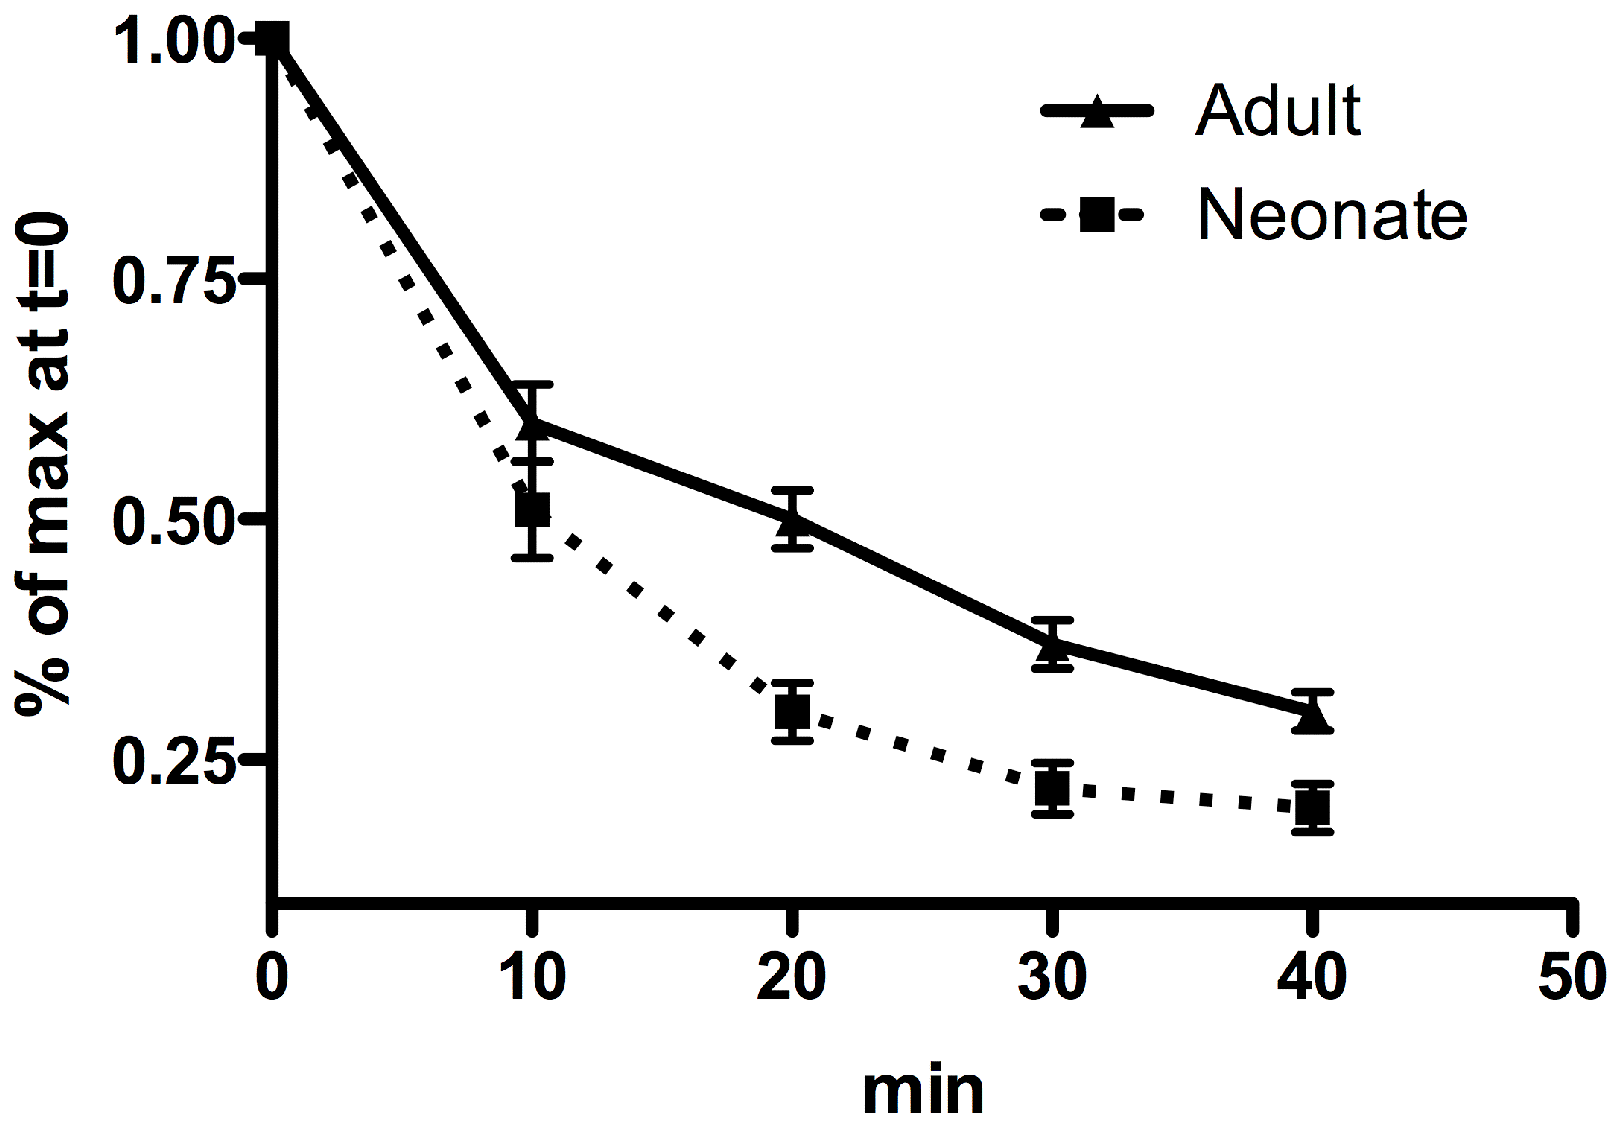 TCR avidity of neonatal and adult memory gB-8p-specific CD8+ T cells.